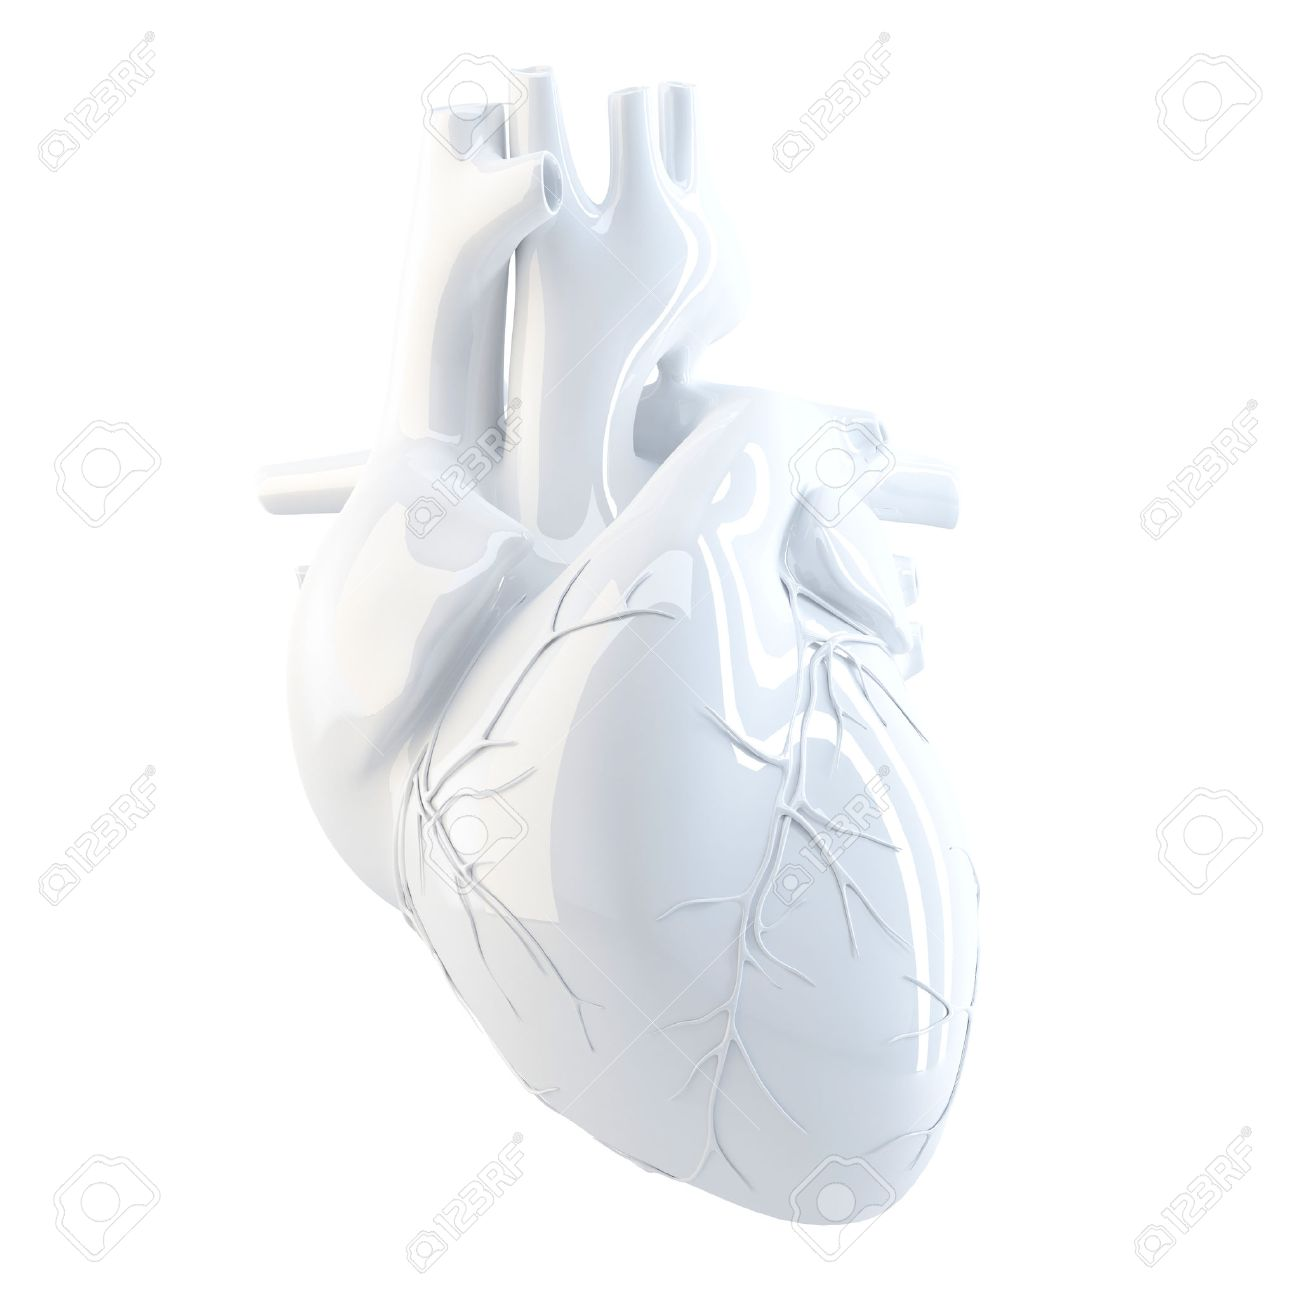 Human Heart. 3d render. Isolated over white, contains clipping path. - 33234201